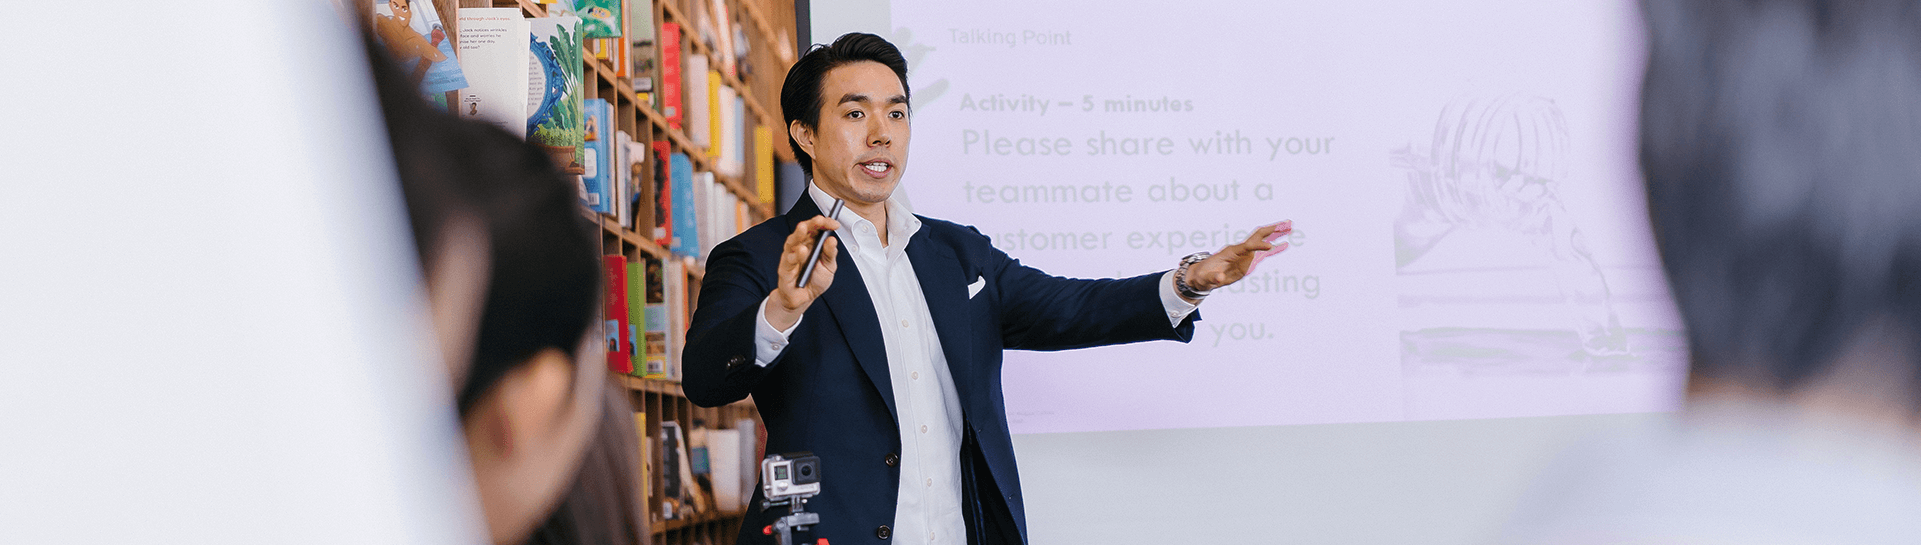 A man in a suit giving a lecture